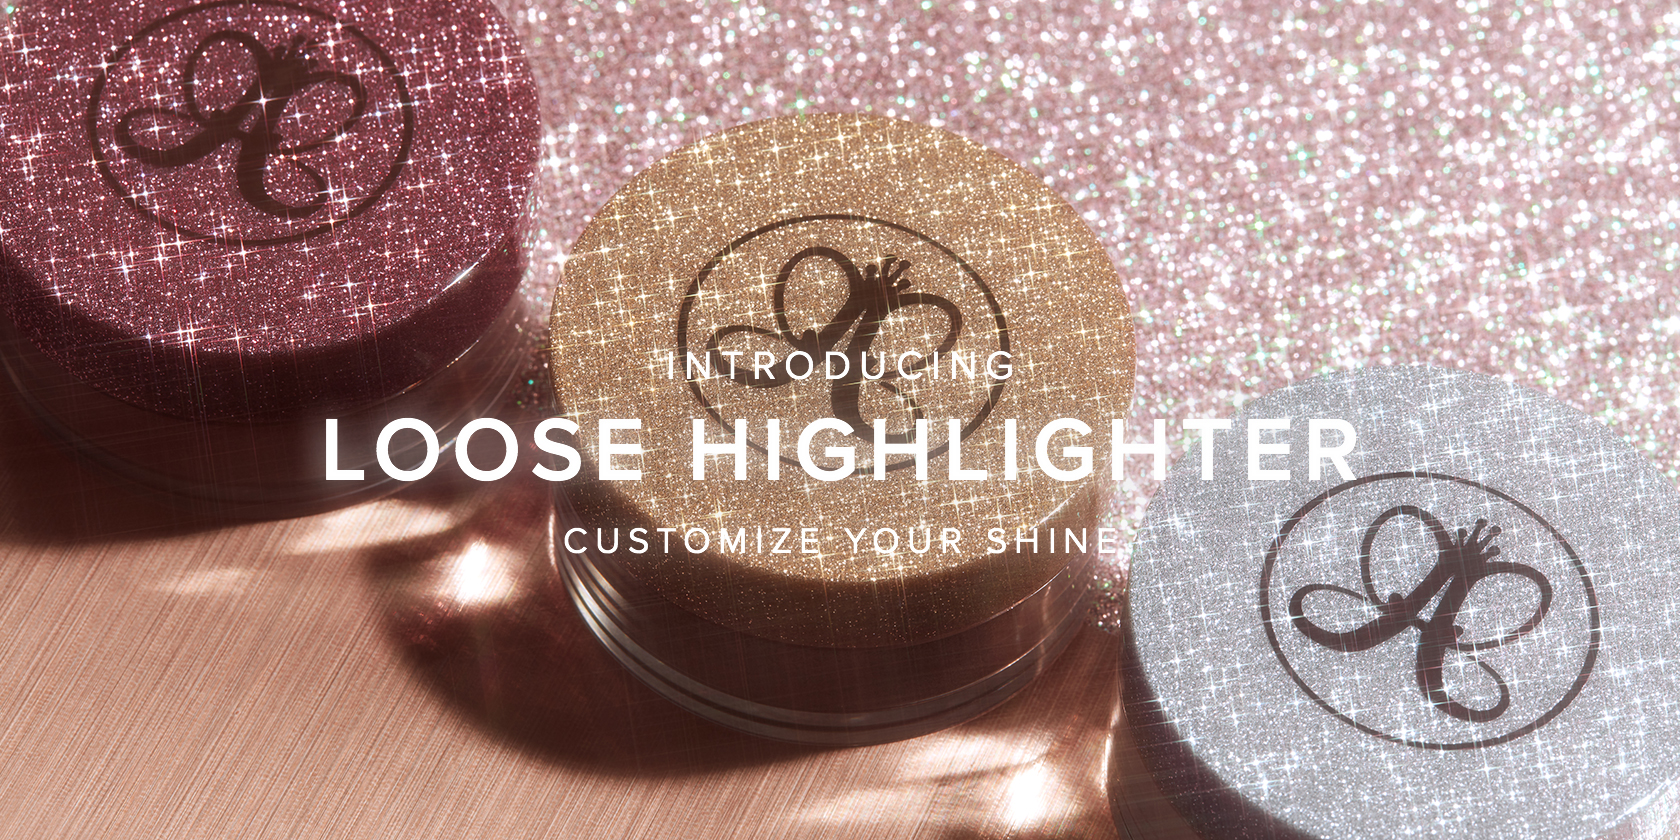 lntroducing Loose Highlighter